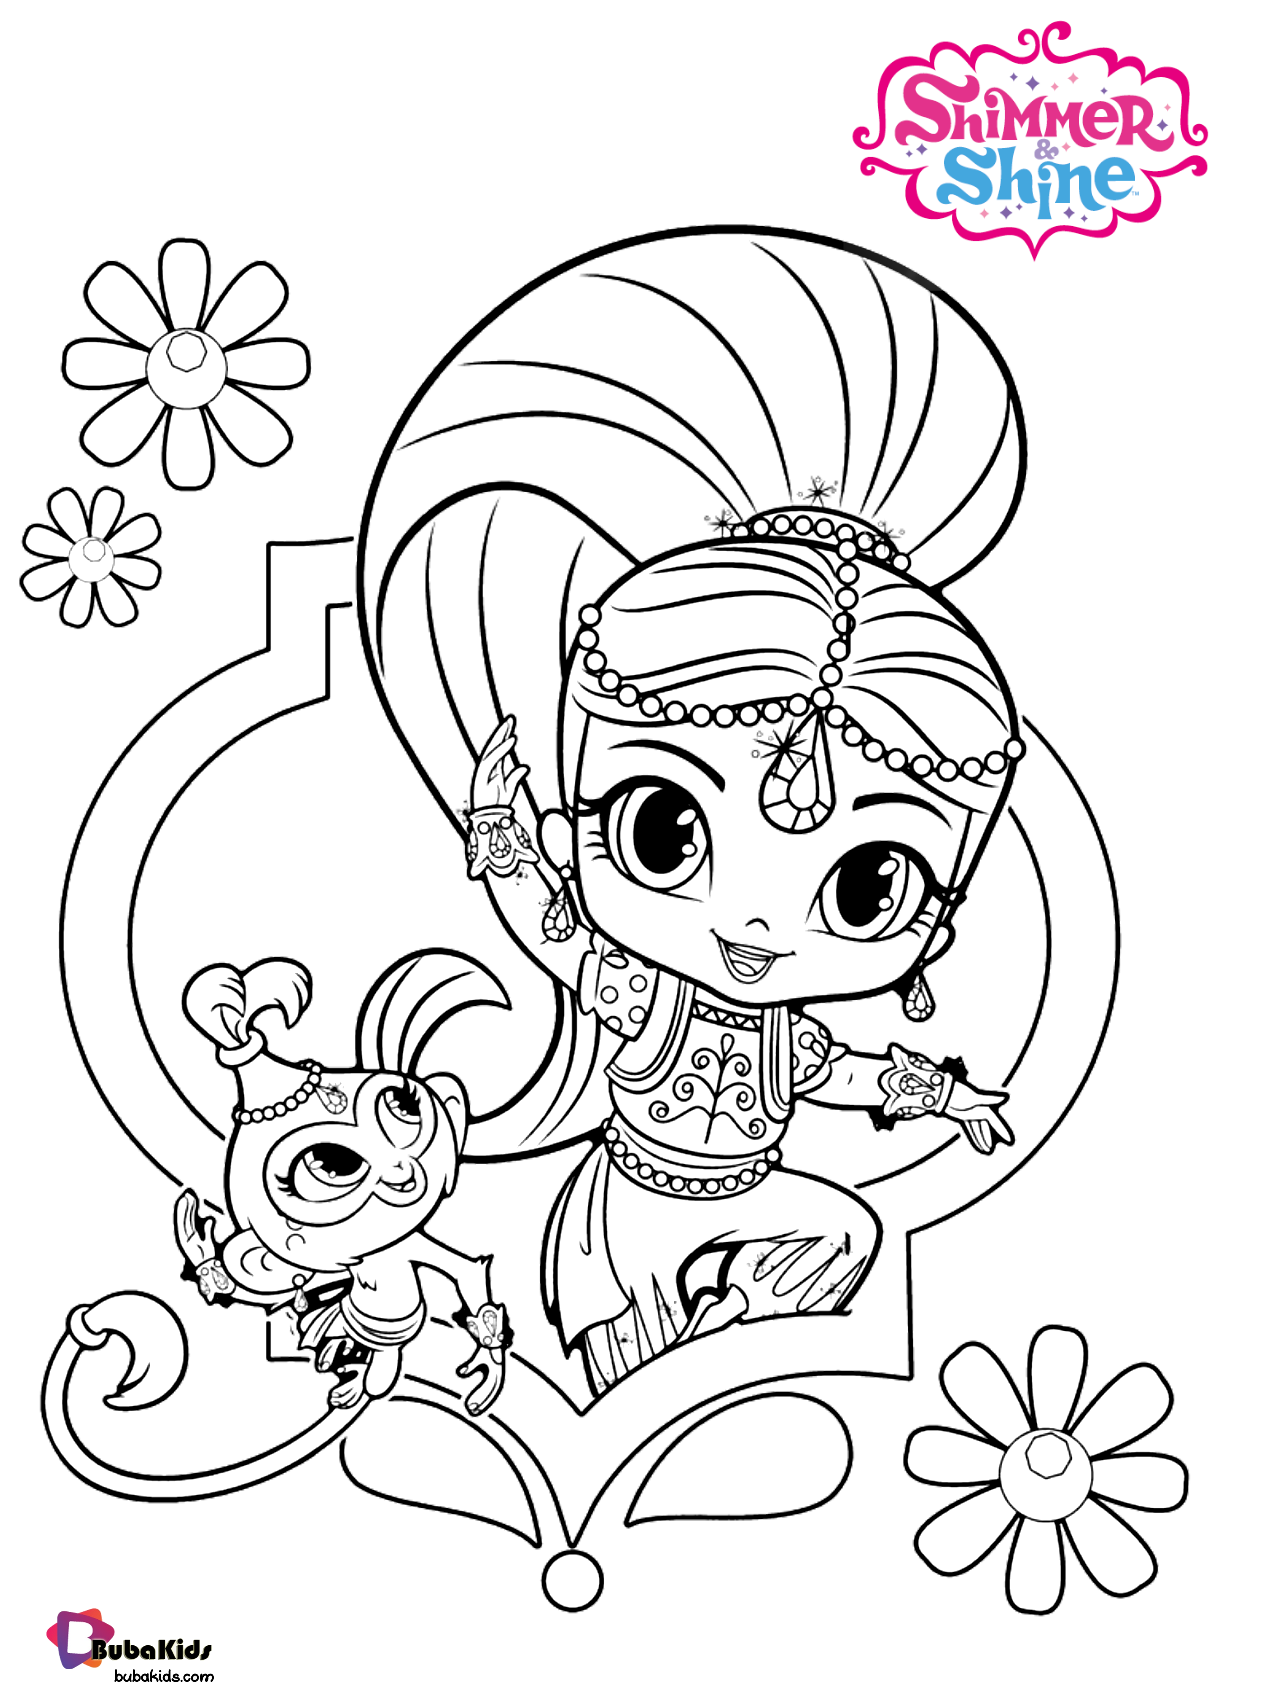 Nick jr Shimmer and Shine free download and printable coloring page Wallpaper